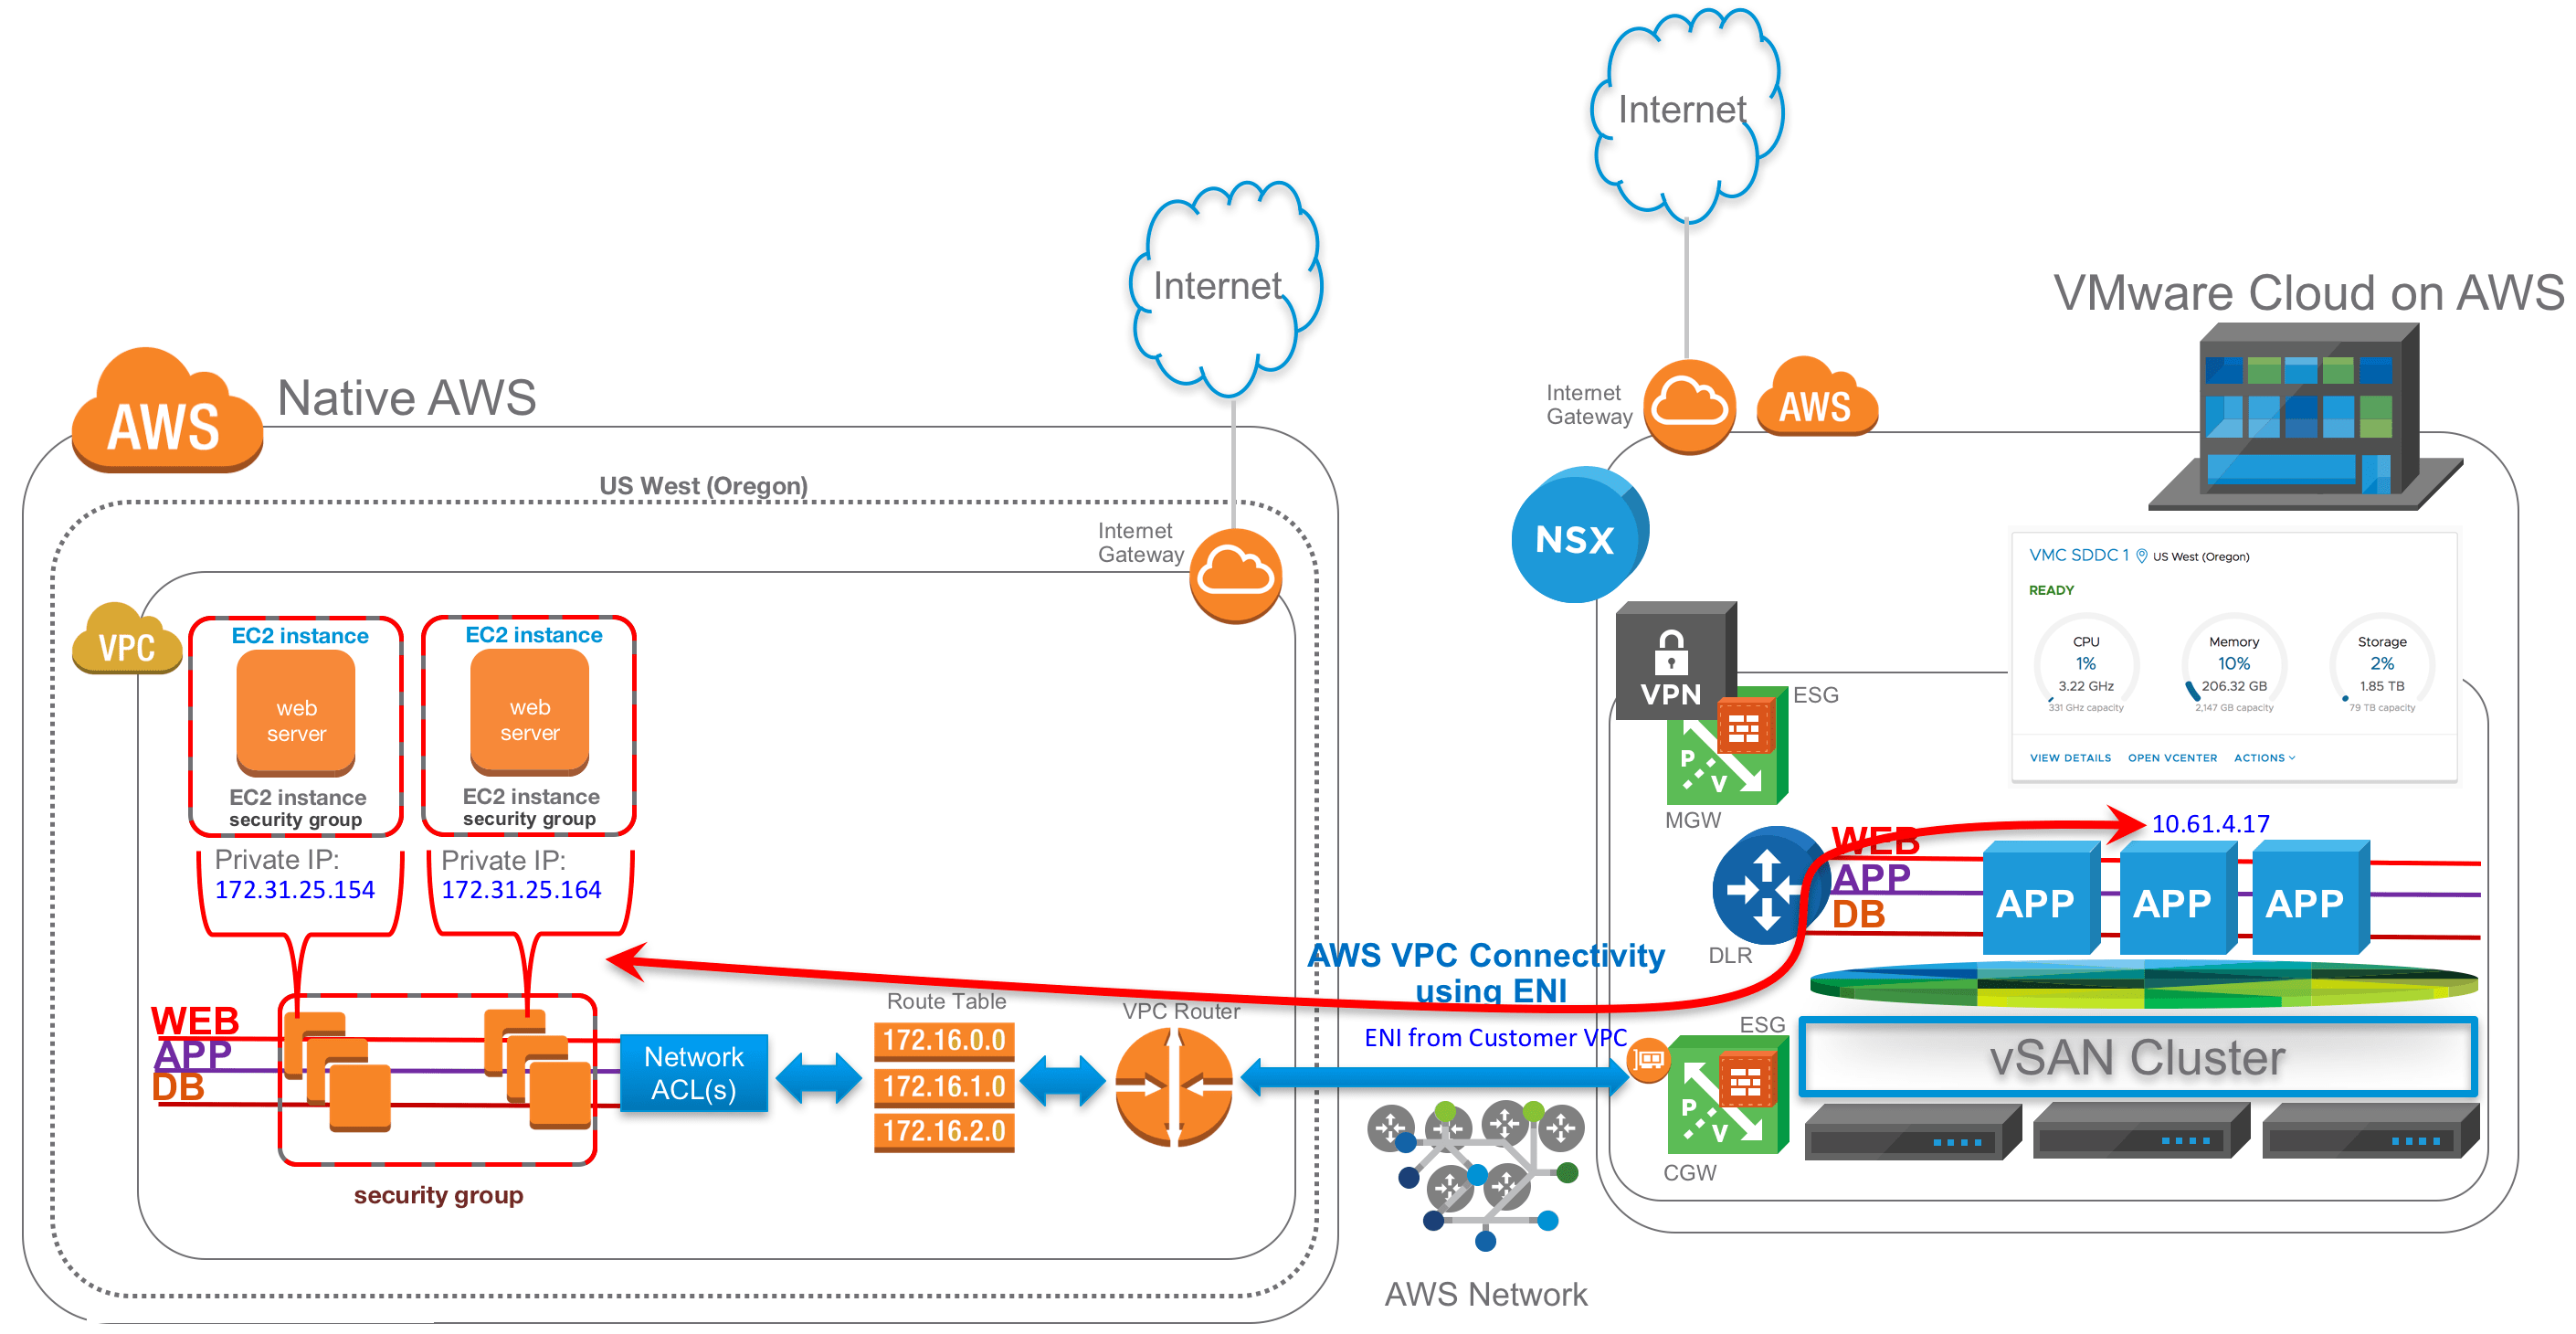 vmware virtual server diagram stereo wiring for 2002 ford explorer cloud on aws with nsx communicating native